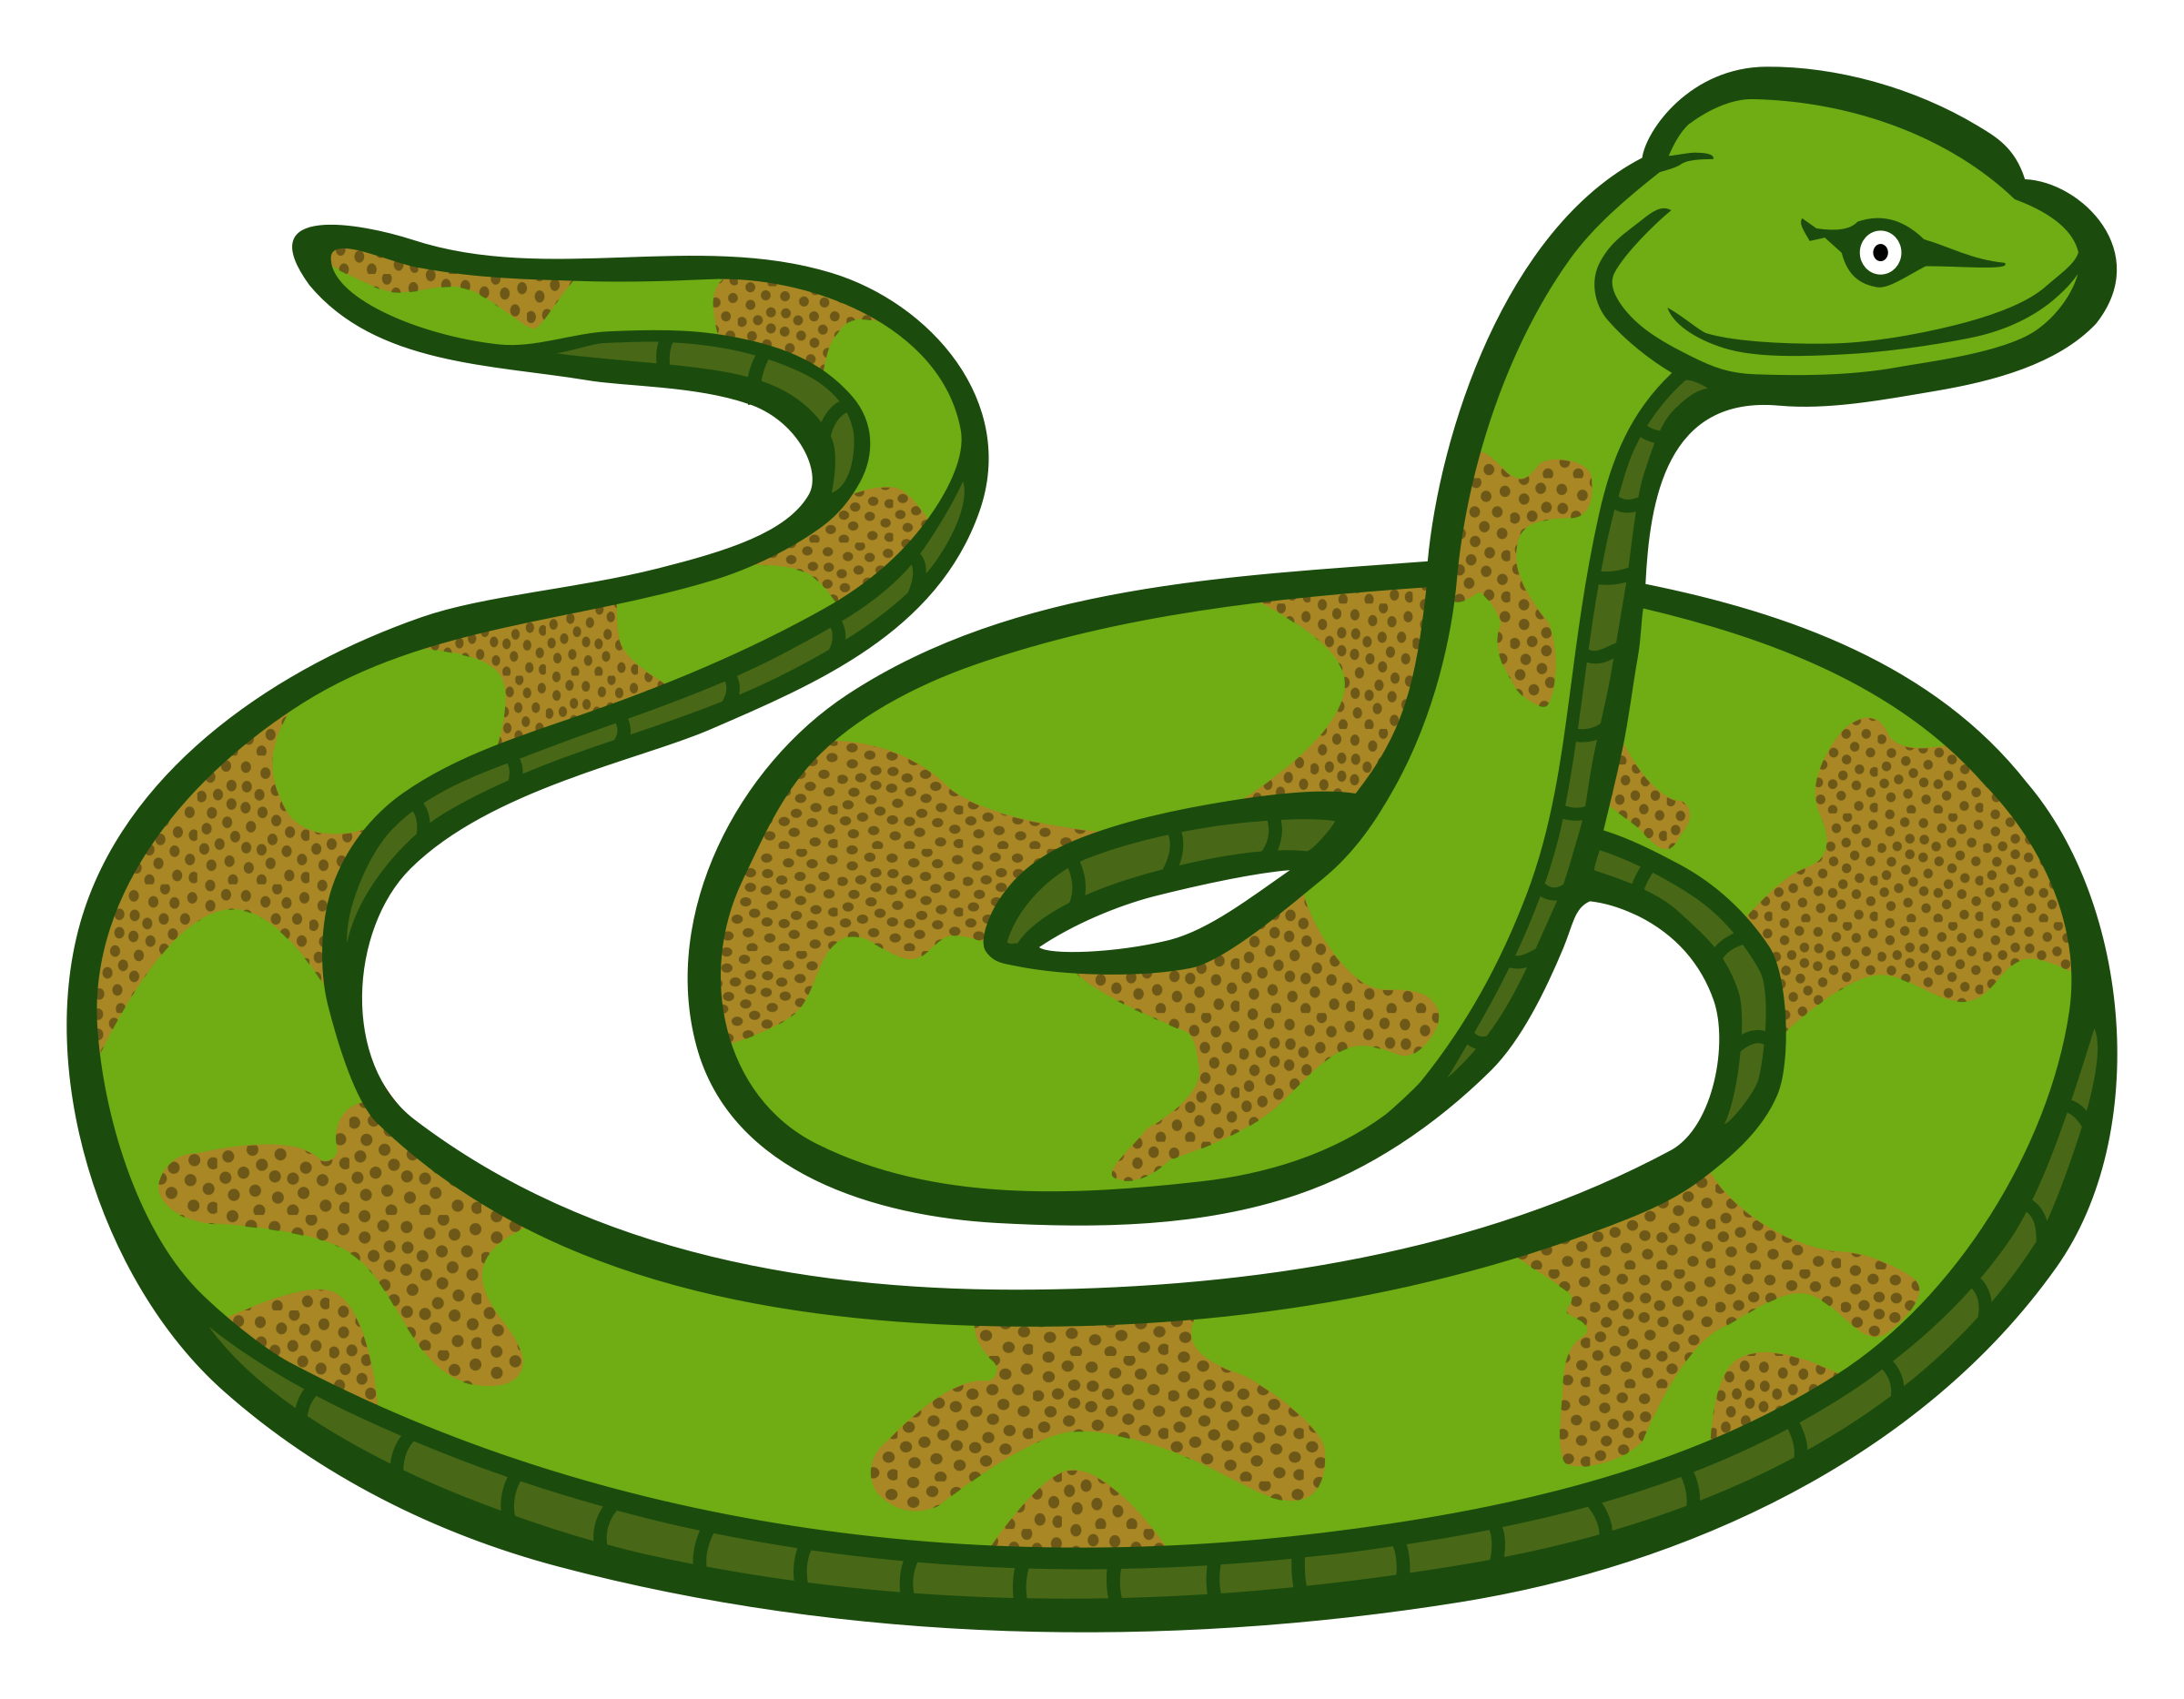 328 Snakes free clipart.